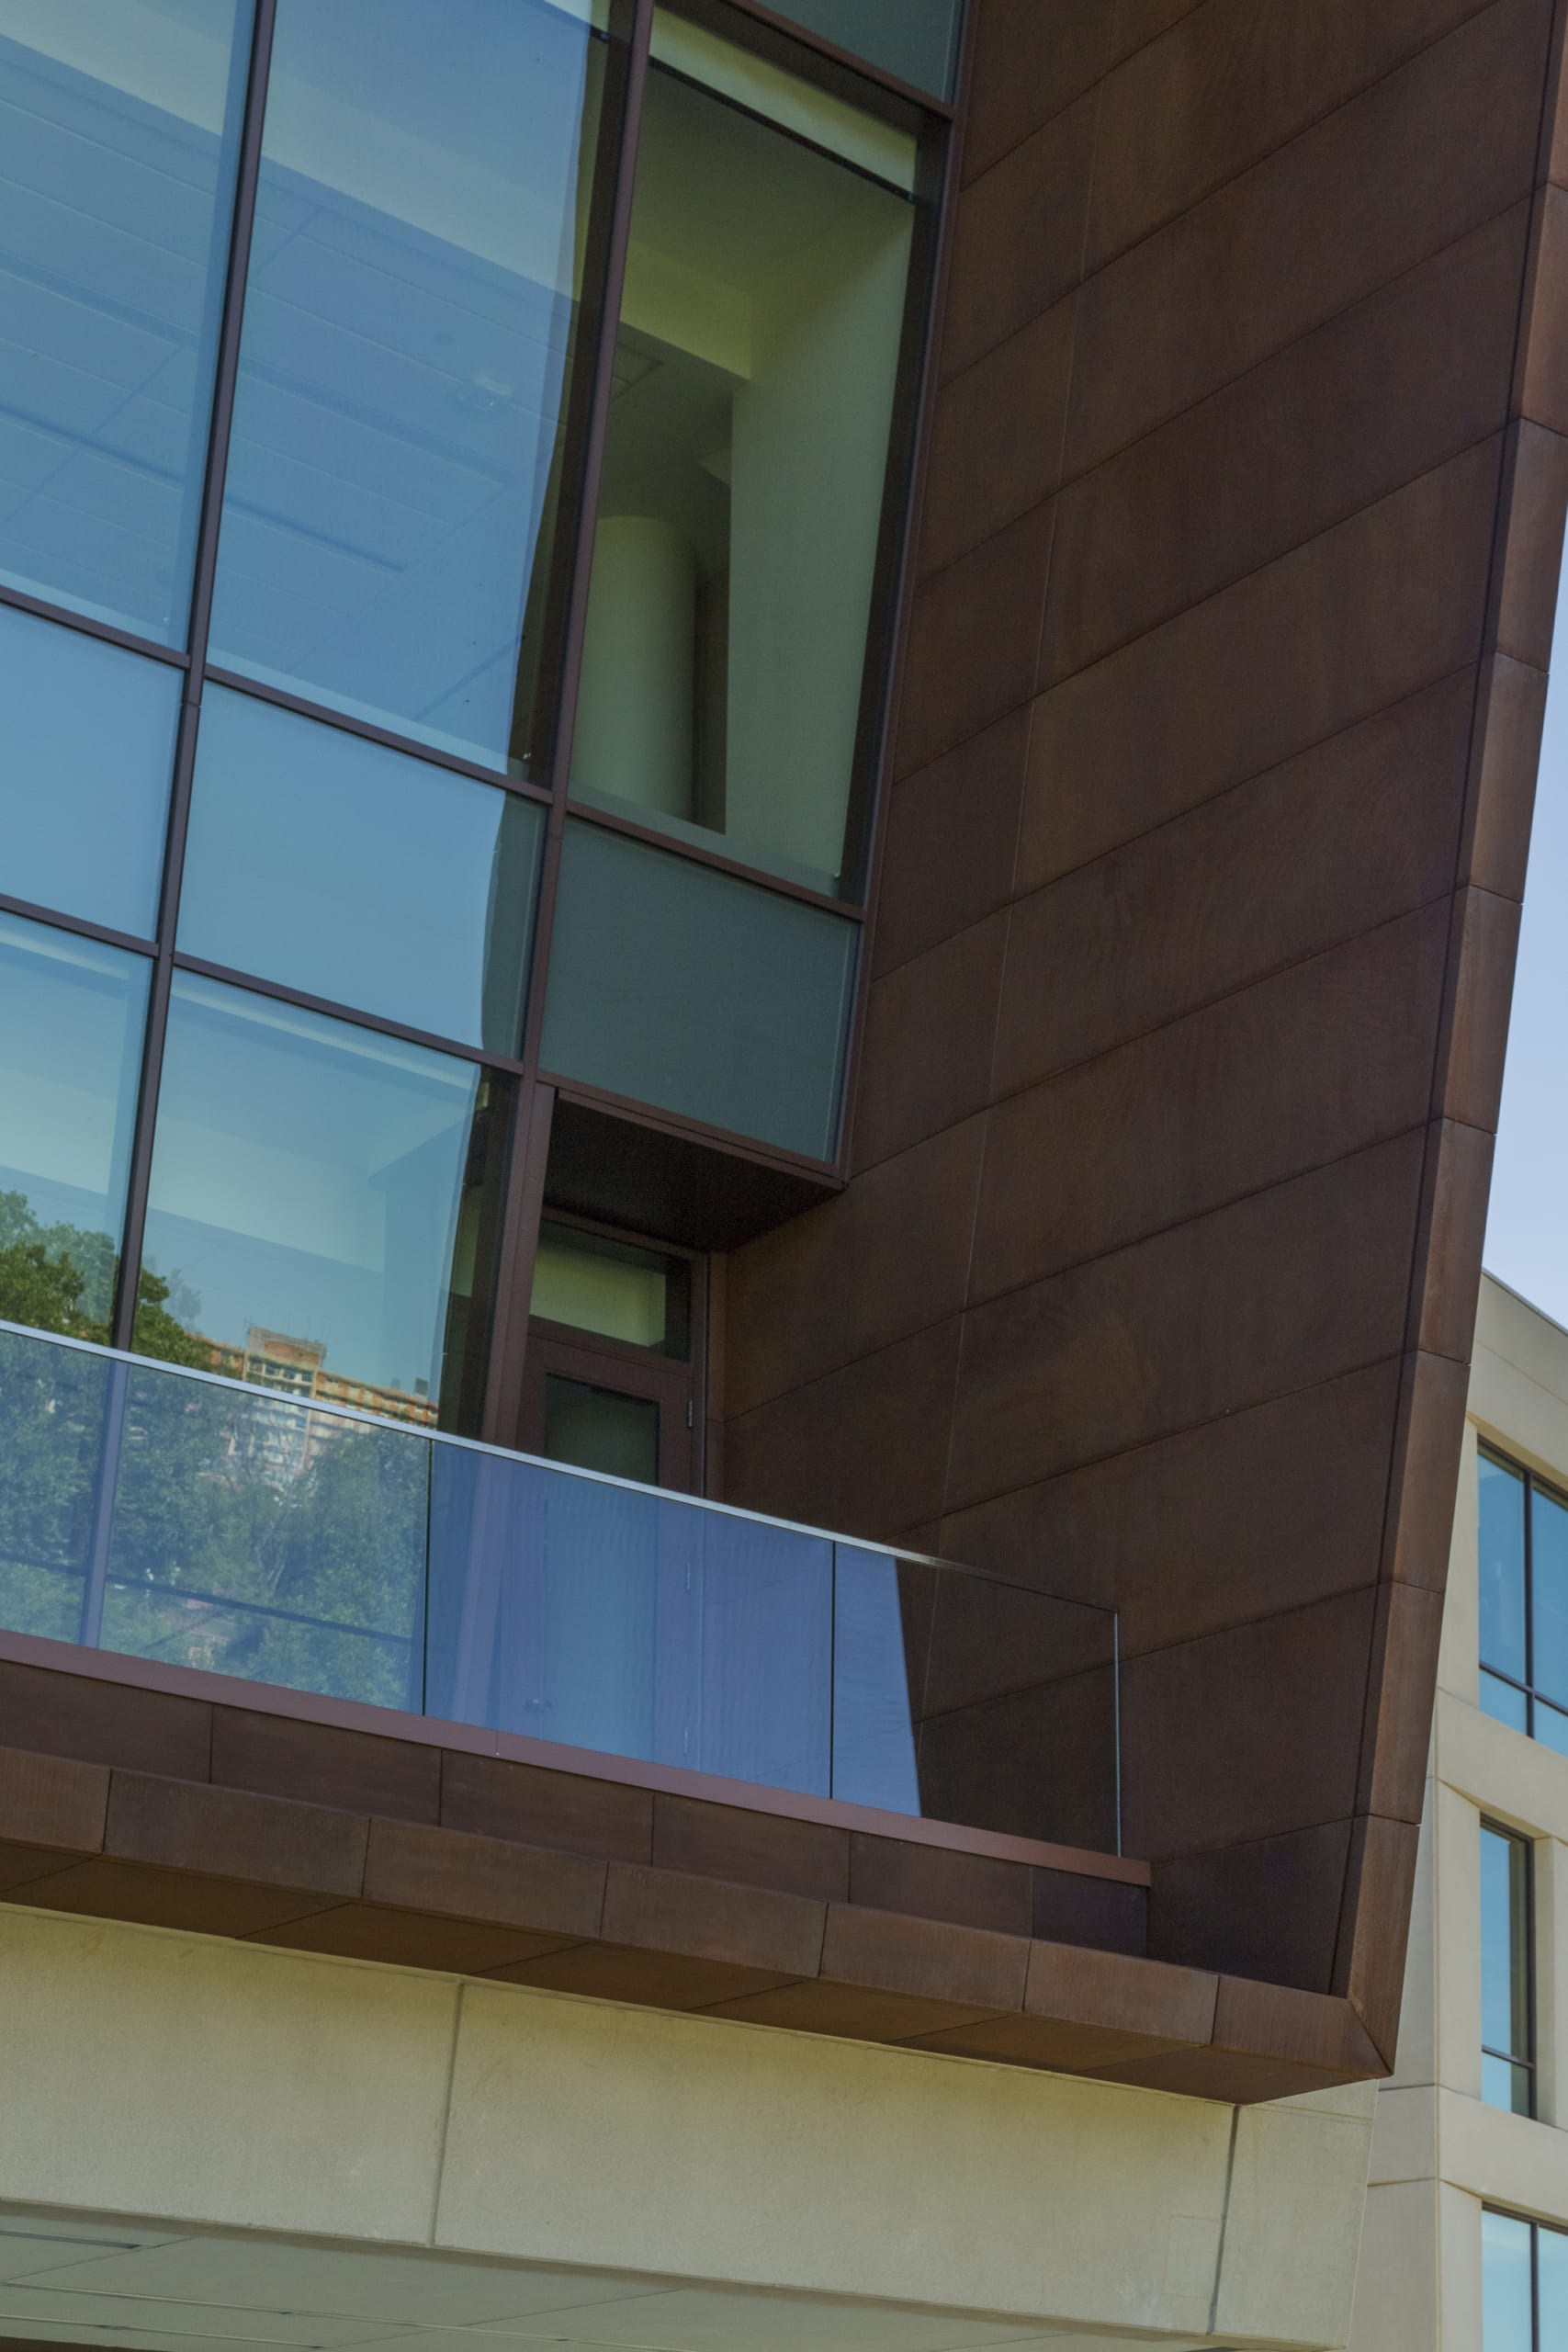 Detail of the Solanum Steel Balcony at Capitol Federal Hall